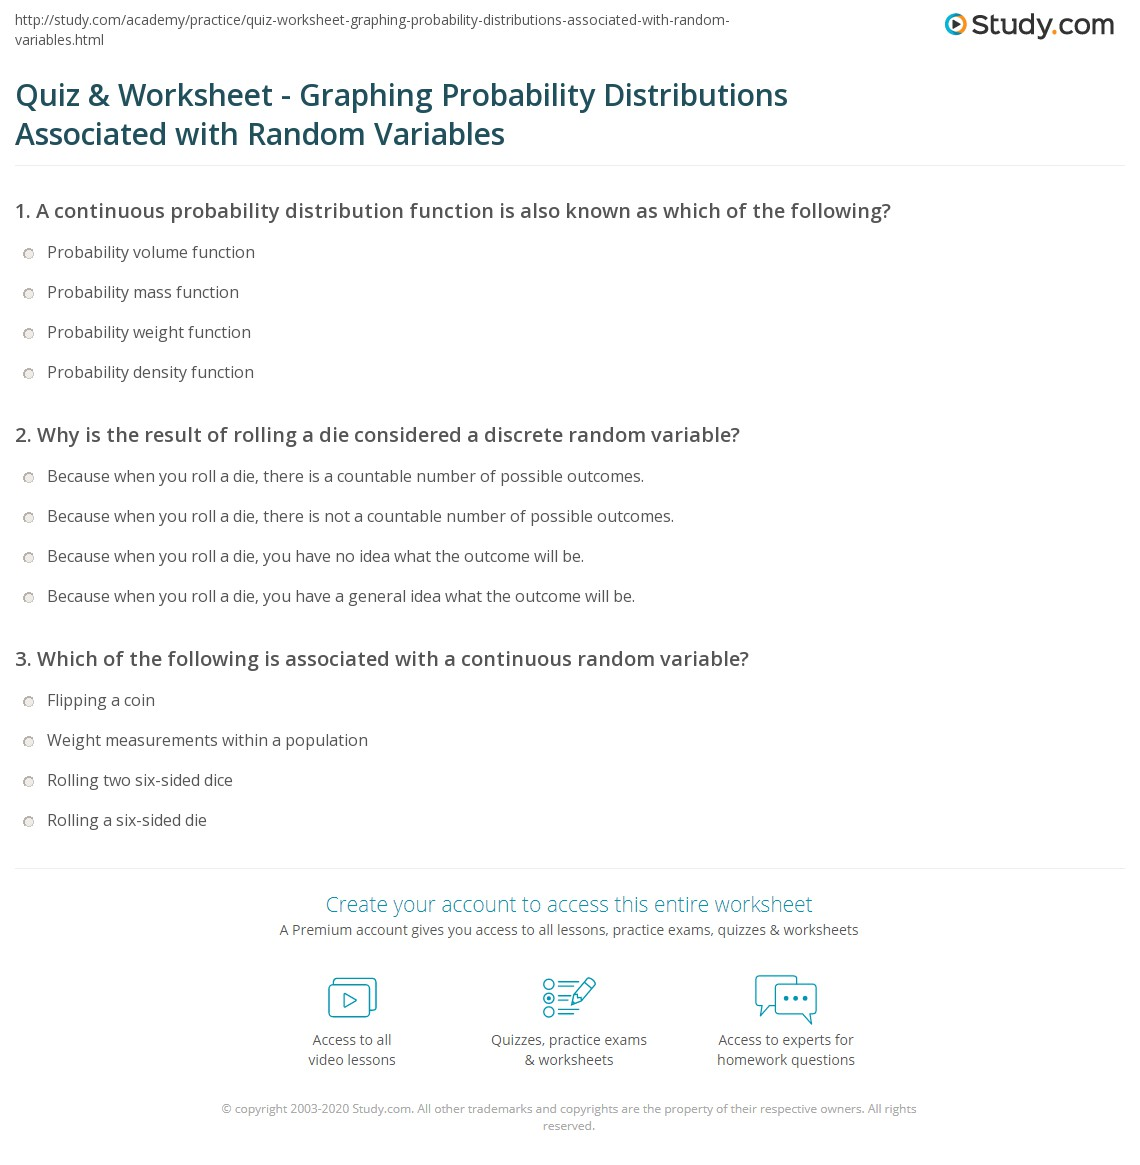 Quiz & Worksheet - Graphing Probability Distributions Associated ...